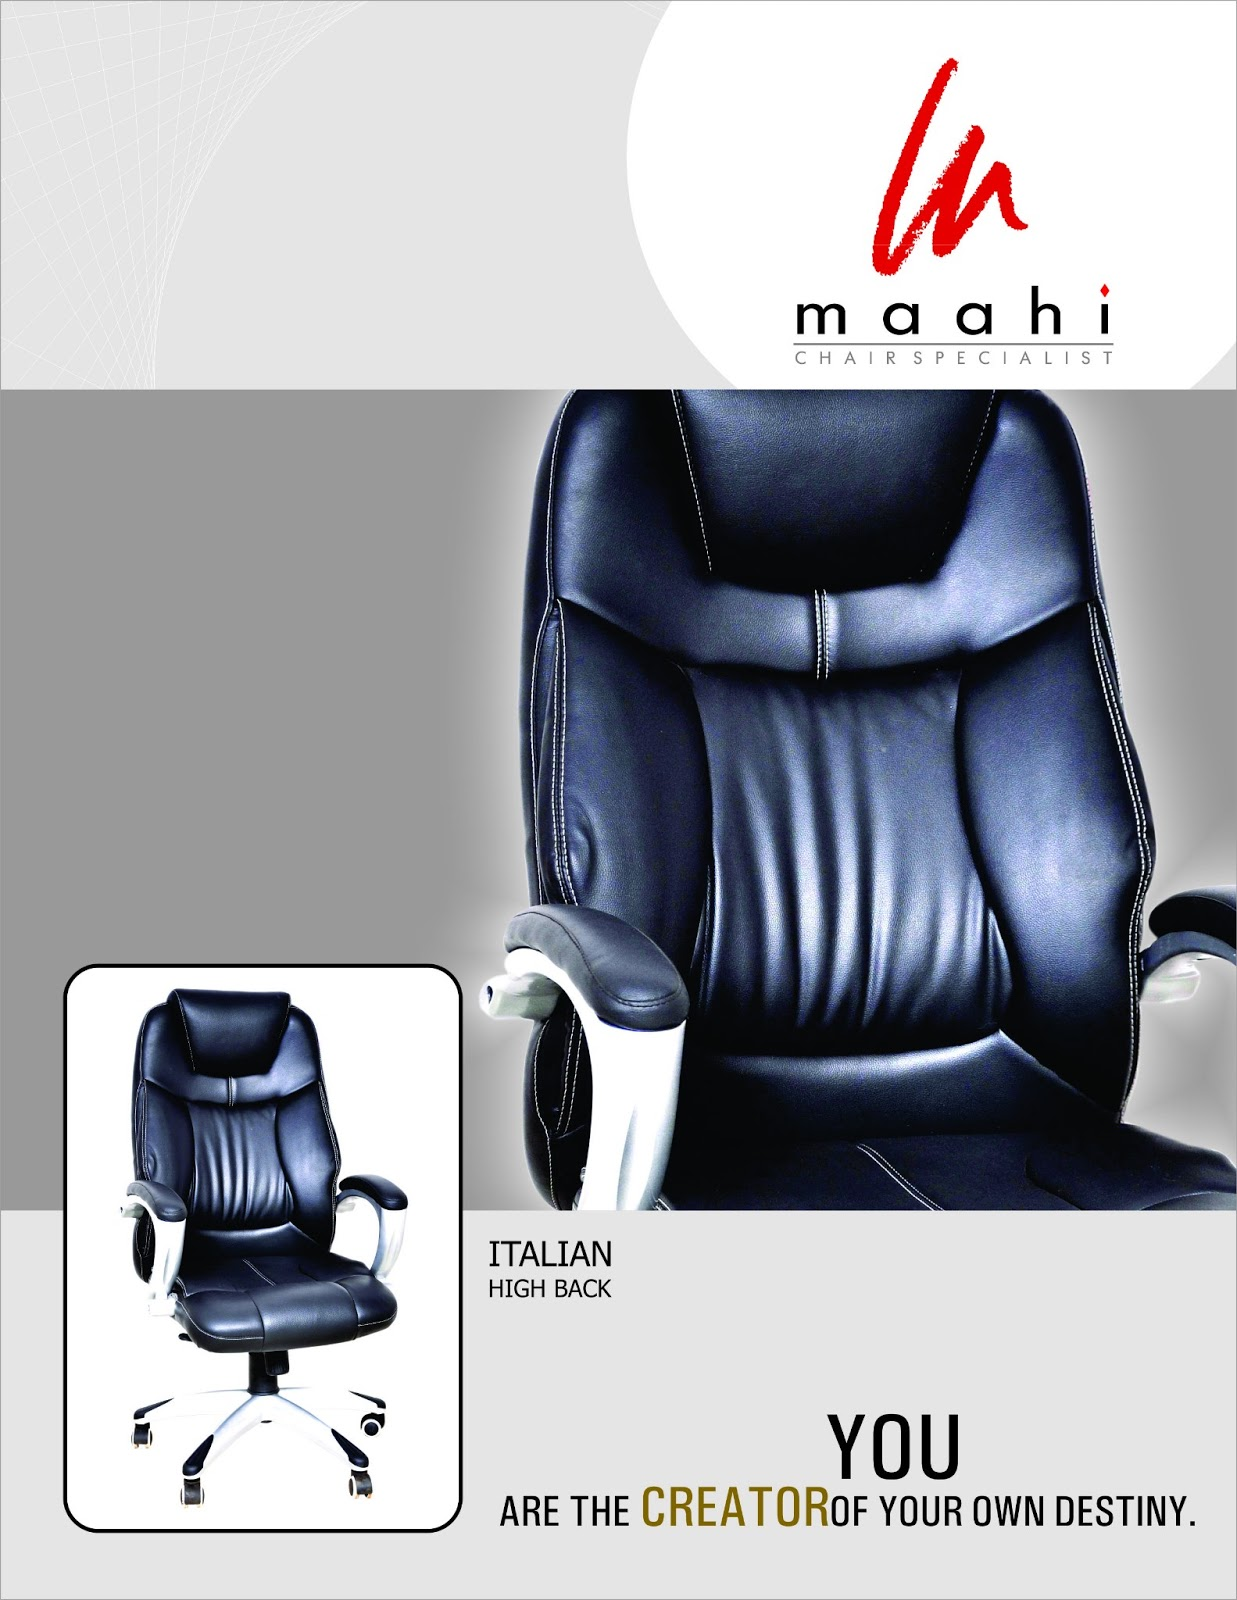 Revolving Chair Manufacturers In Ahmedabad Whiskey Barrel Table And Chairs Maahi